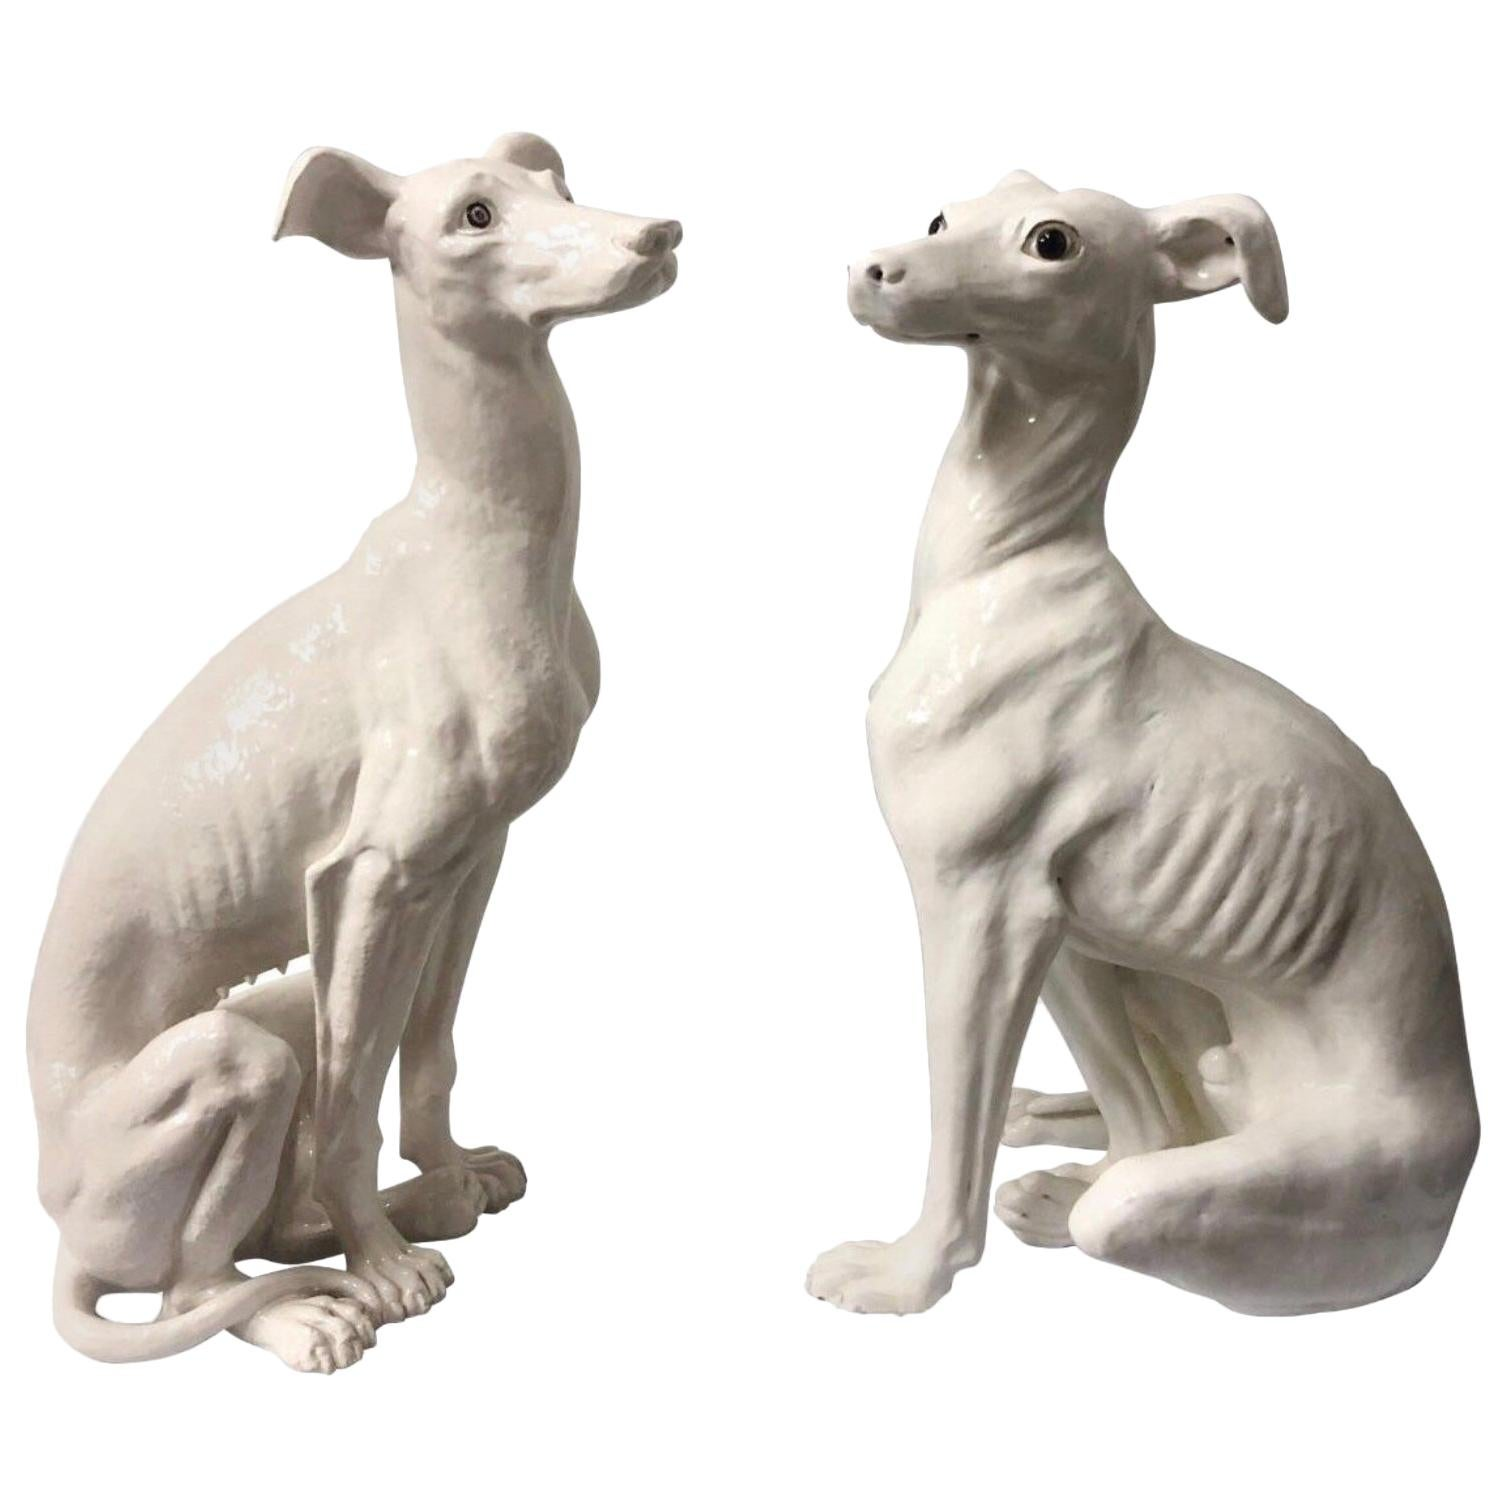 Pair of Italian Hollywood Regency Era Life-Size Italian Terracotta Whippets